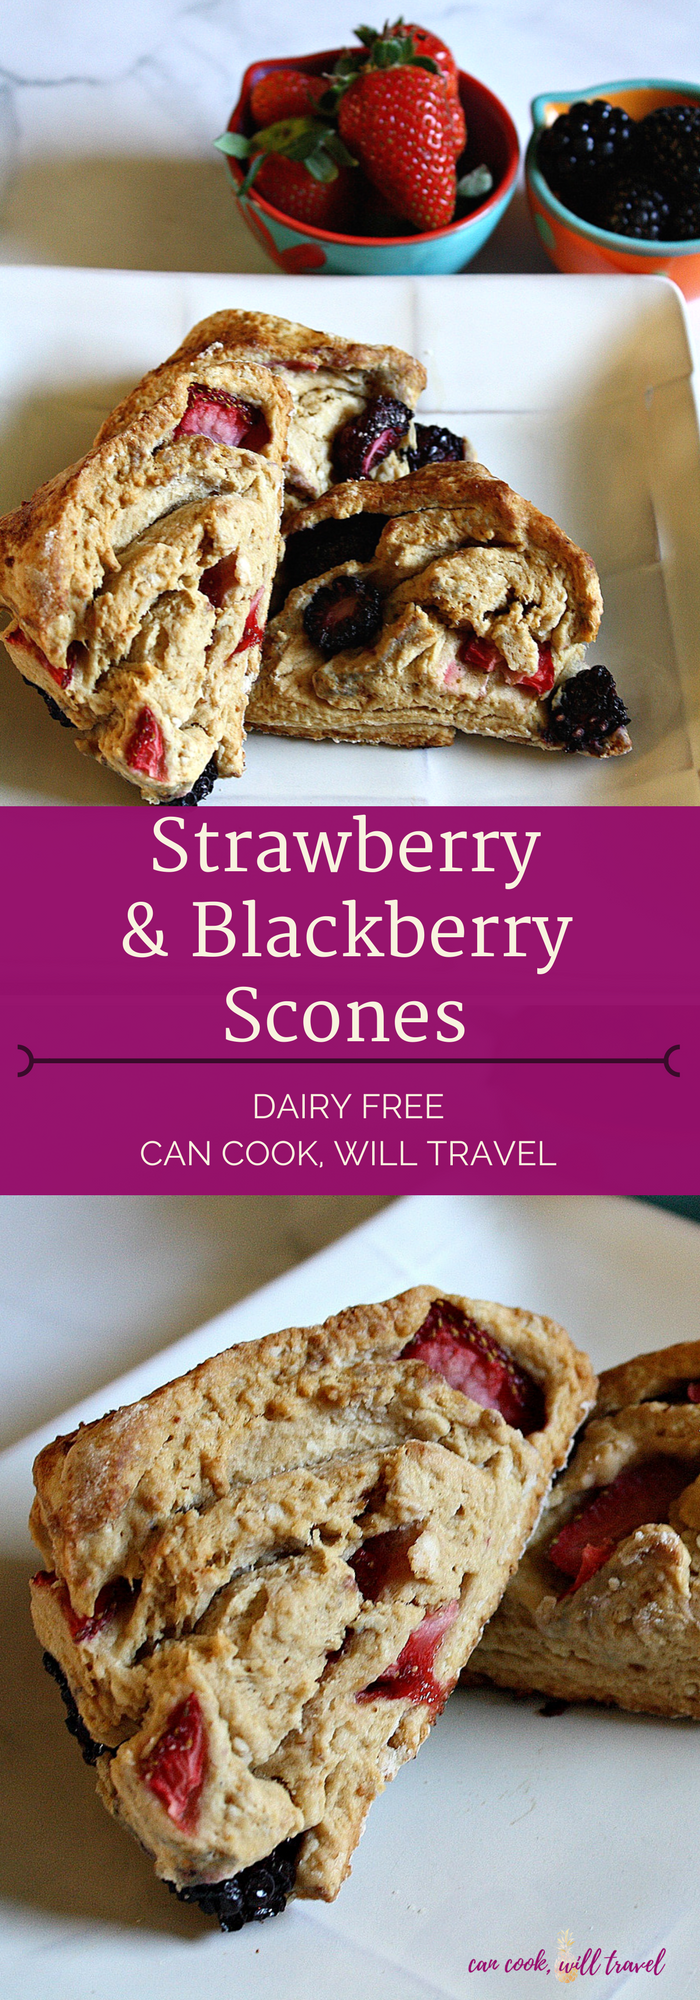 Strawberry Blackberry Scones_Collage1